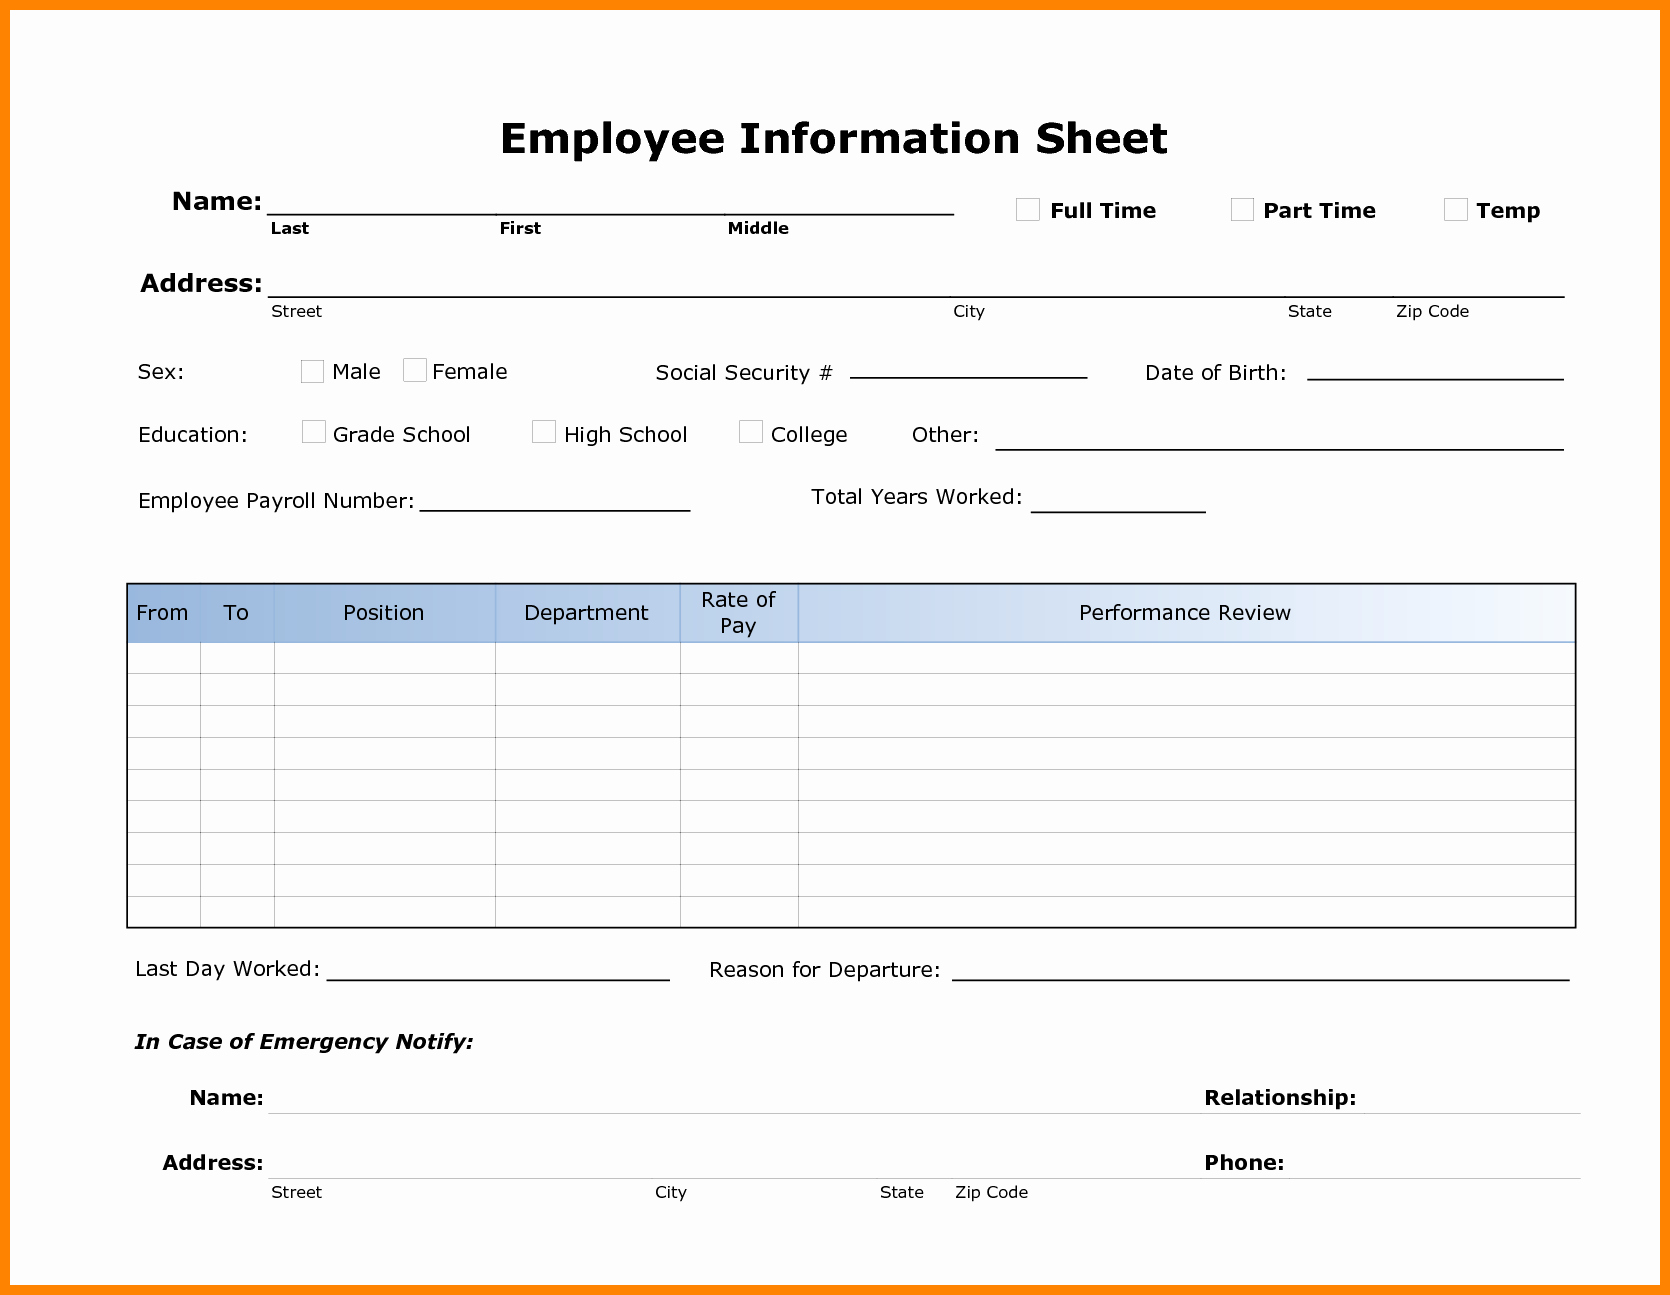 Personal Information Sheet Template Luxury 8 Employee Payroll forms Template